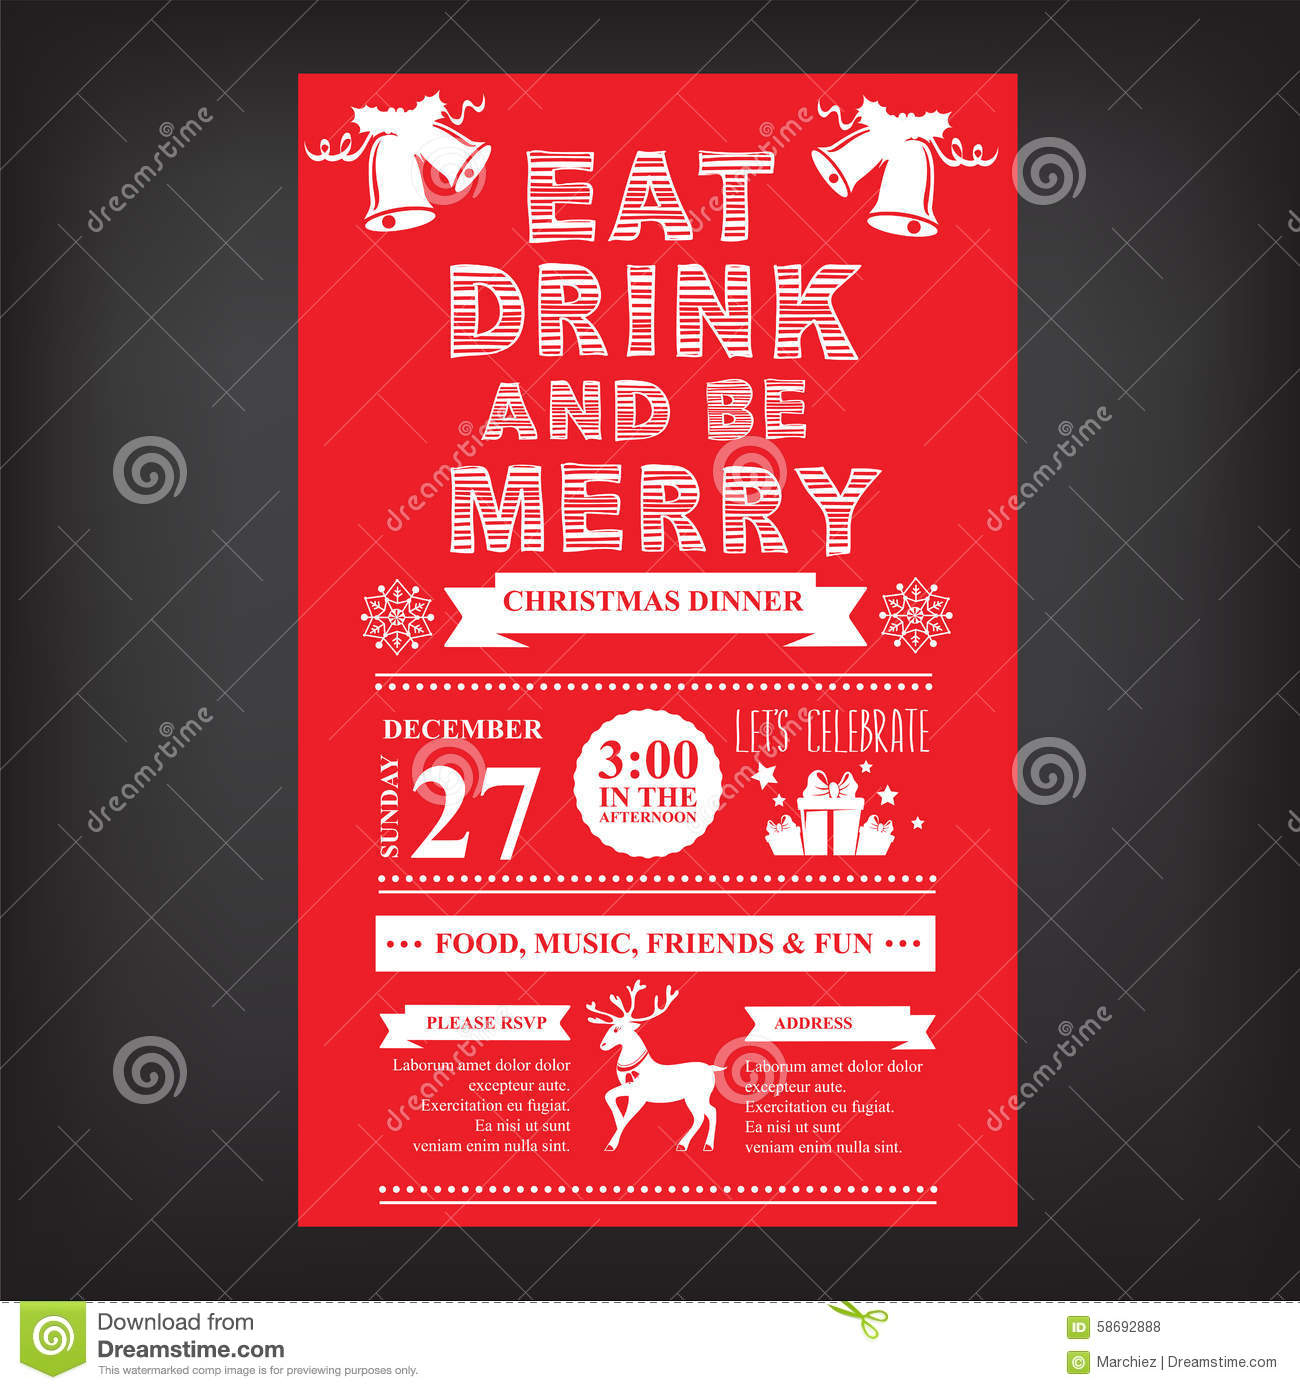 Christmas Restaurant And Party Menu, Invitation. Paper, Flyer.  Free Downloadable Restaurant Menu Templates